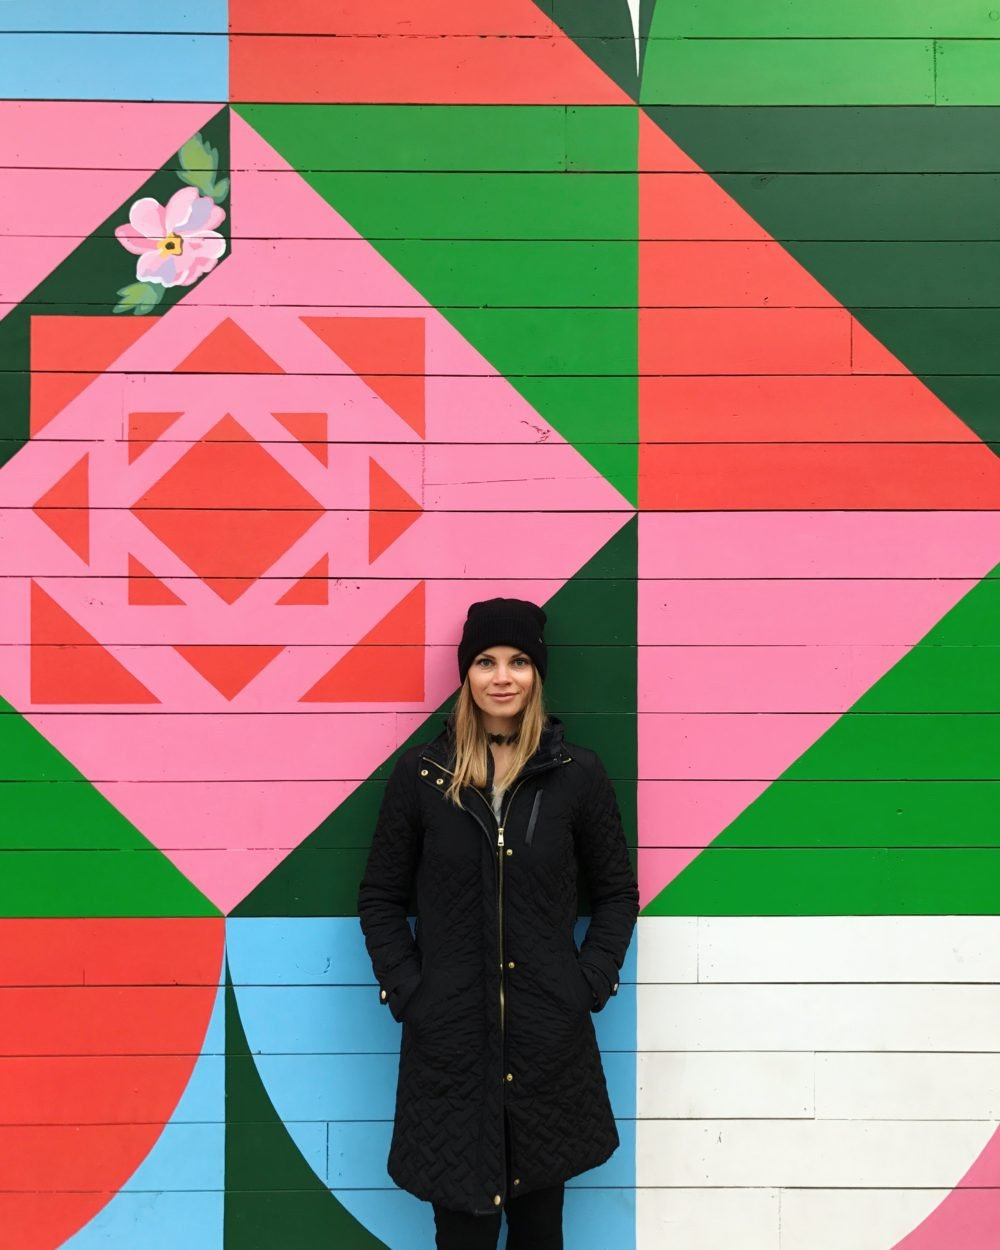 monique in front of a colorful wall